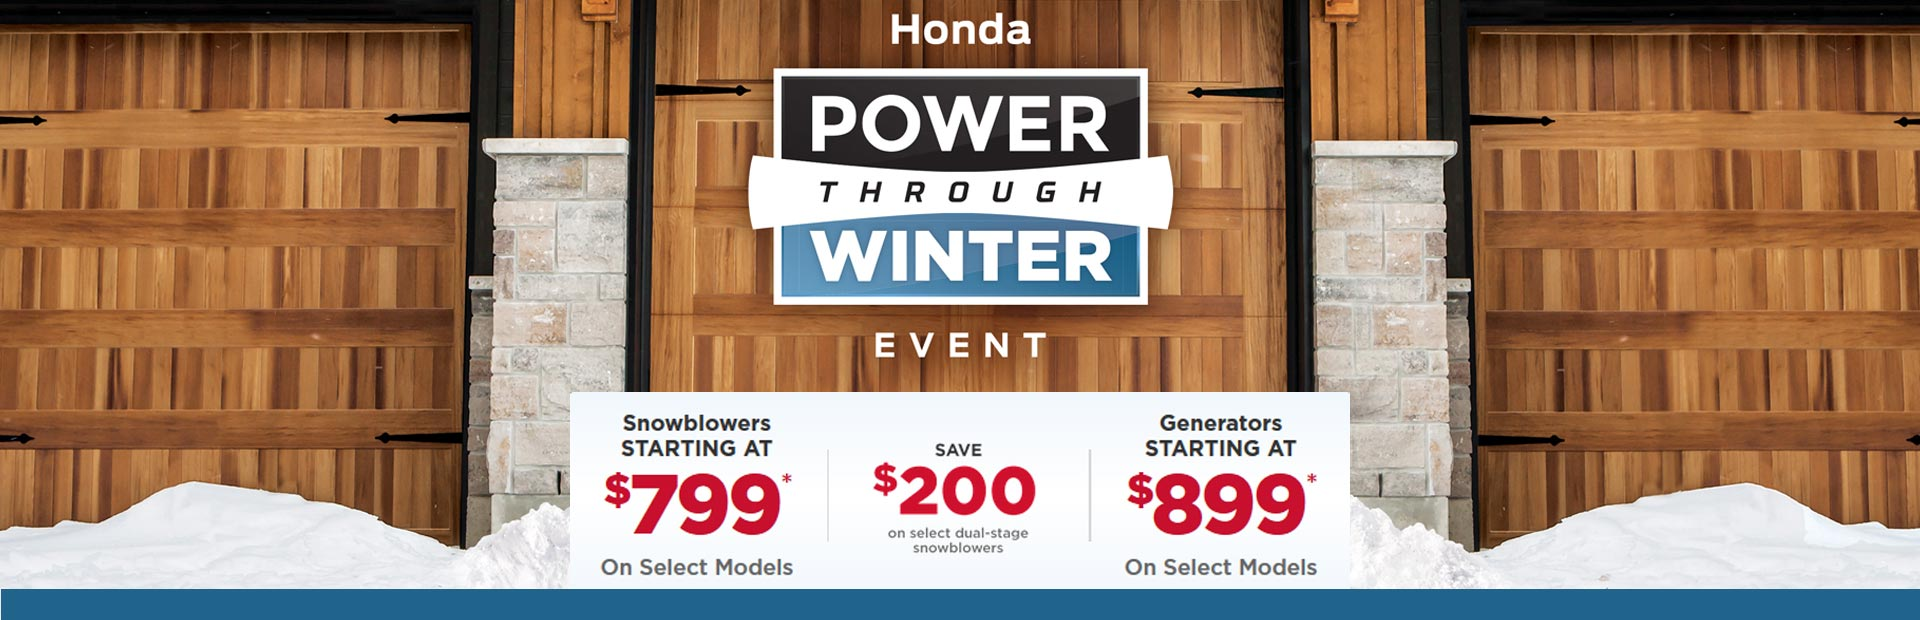 Honda Power Equipment: Power Through Winter Event